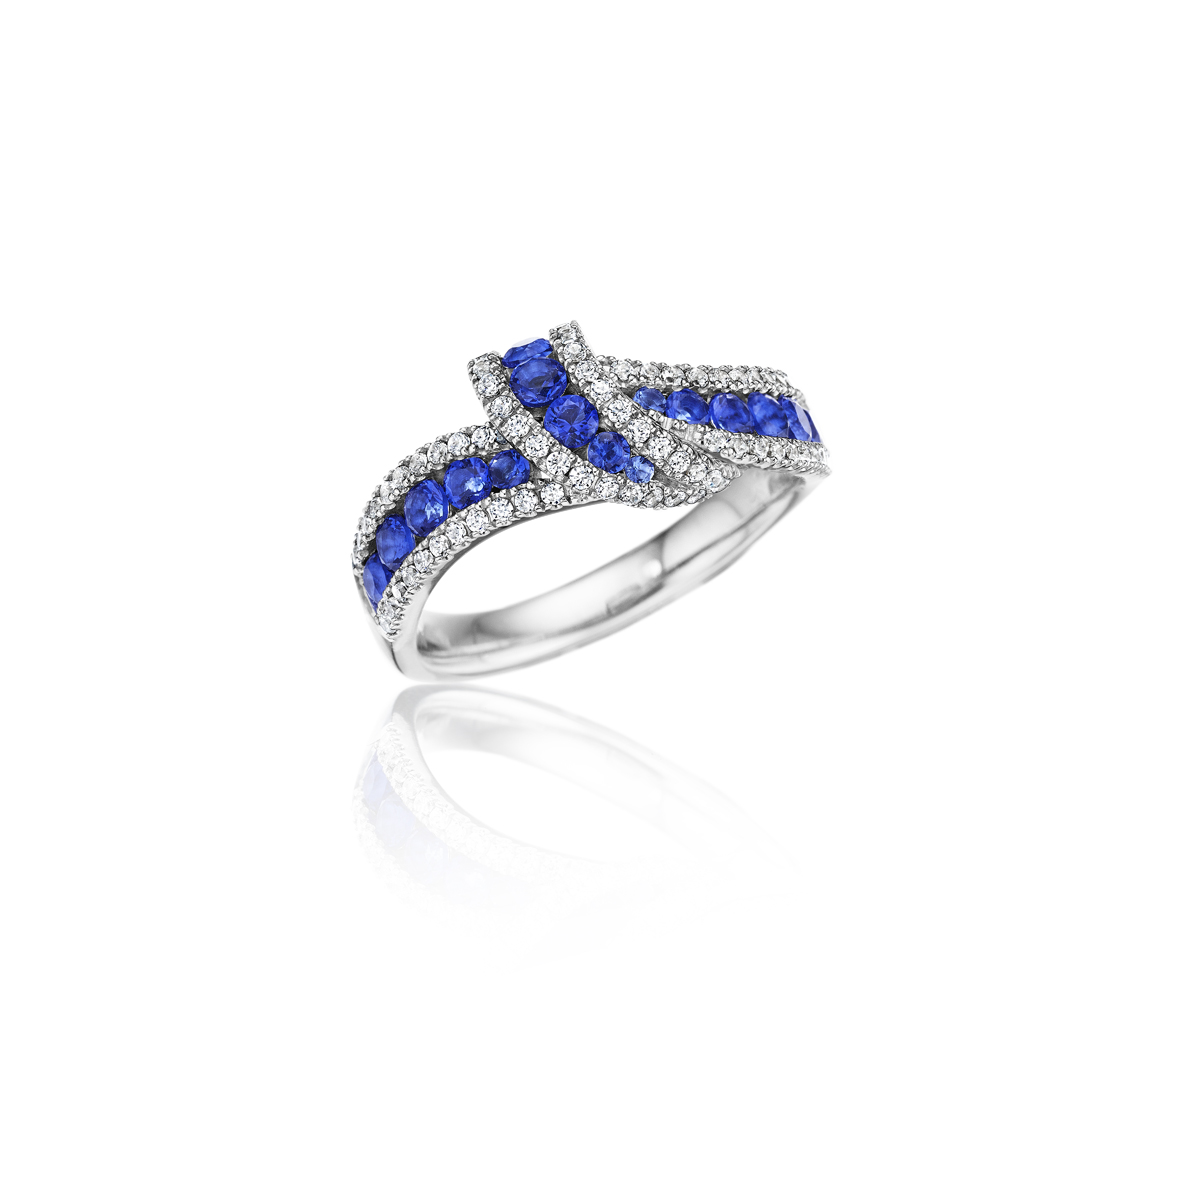 Wrap Me Up Sapphire and Diamond Twist Ring - This wrap me up sapphire and diamond twist ring comes in a variety of material types like 14k white gold, yellow gold, rose gold and can be customized with your jeweler. Fana diamond earrings are perfect for that special woman in your life.